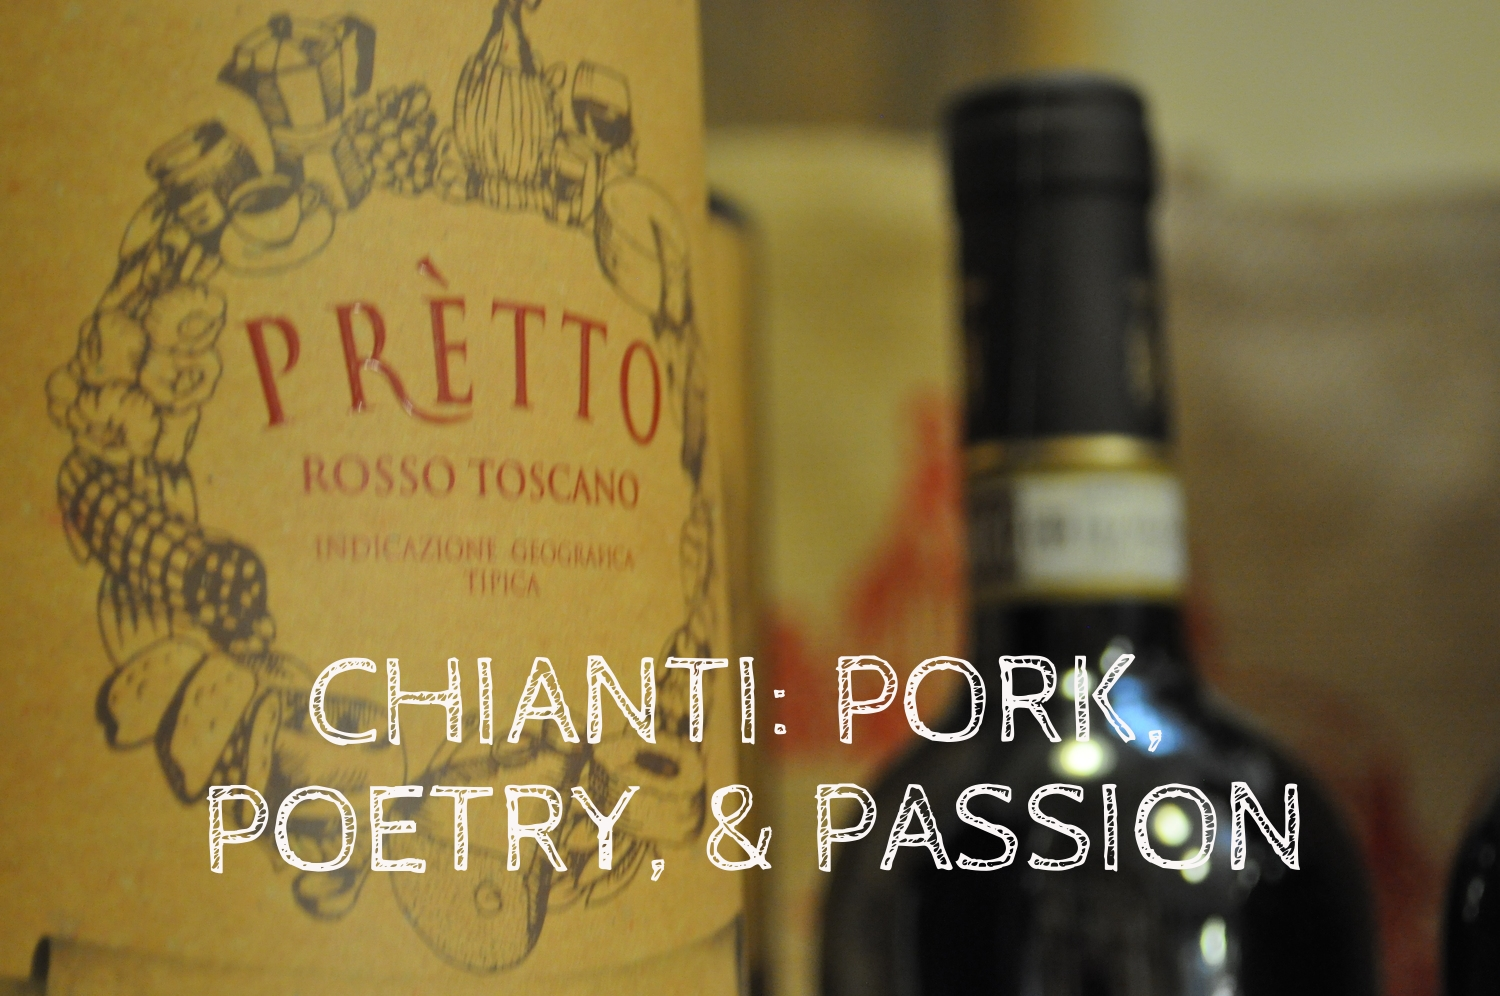 Chianti: Pork, Poetry, & Passion